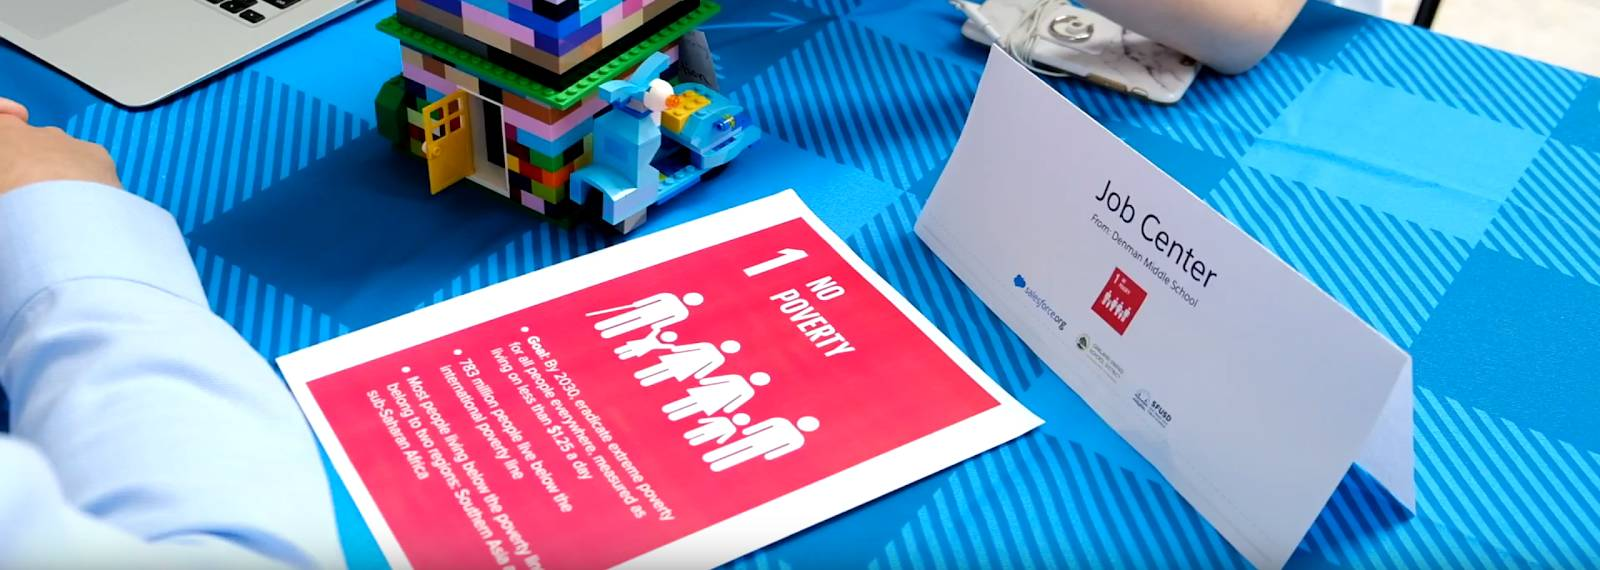 Example of student group signage from Salesforce's San Francisco Bay Area Maker Faire